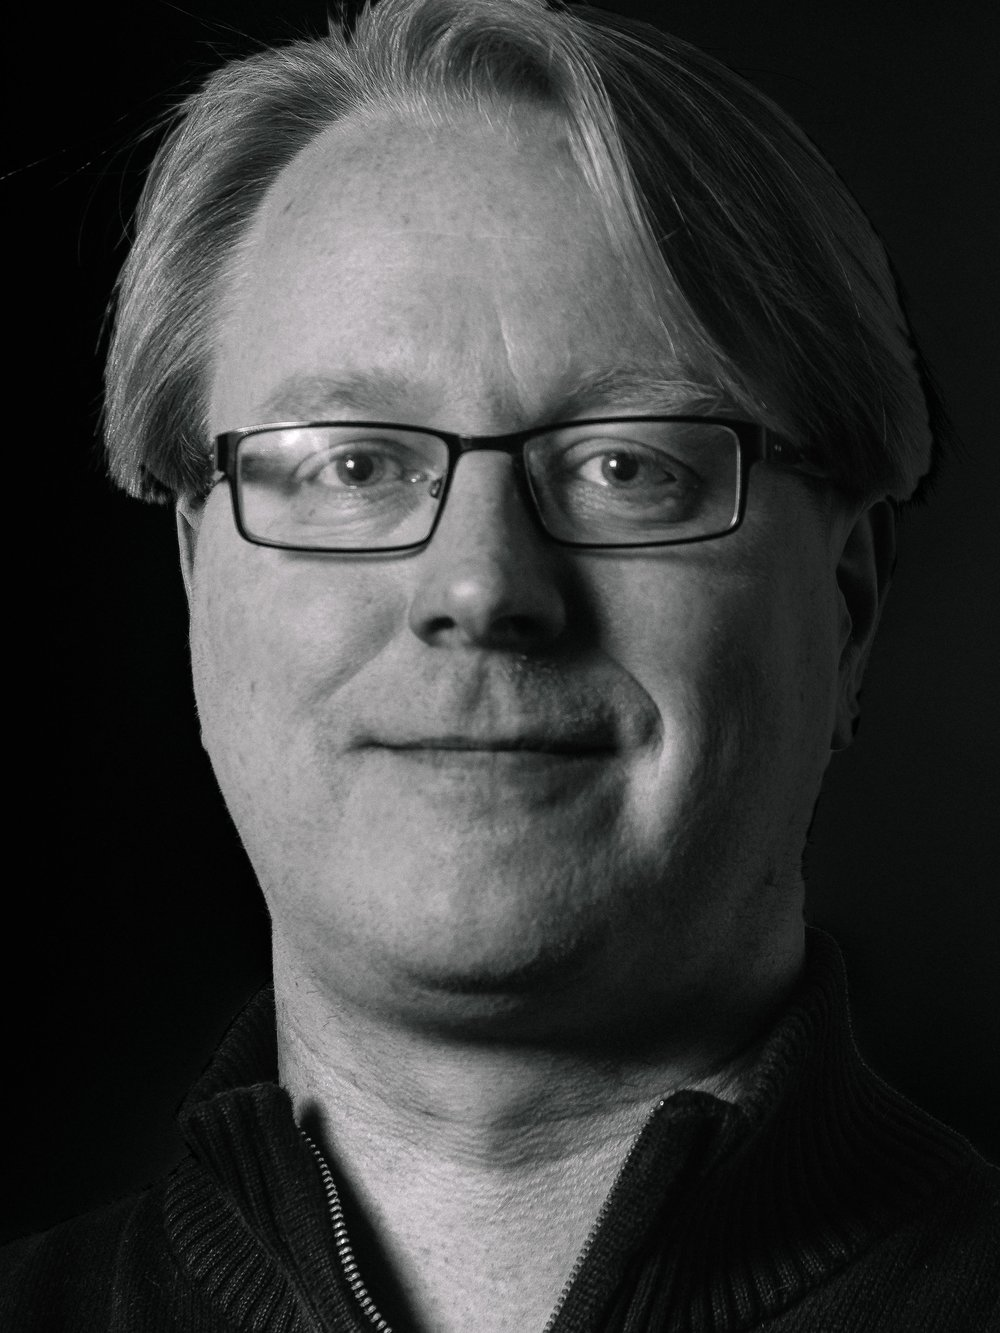 Mikko Ollila Camera lead. Pioneer in mobile imaging and camera development lead. Previously Camera Project Lead at Intel, Senior Specialist at Nokia. Inventor in 40+ patents. M.Sc in Microelectronics.